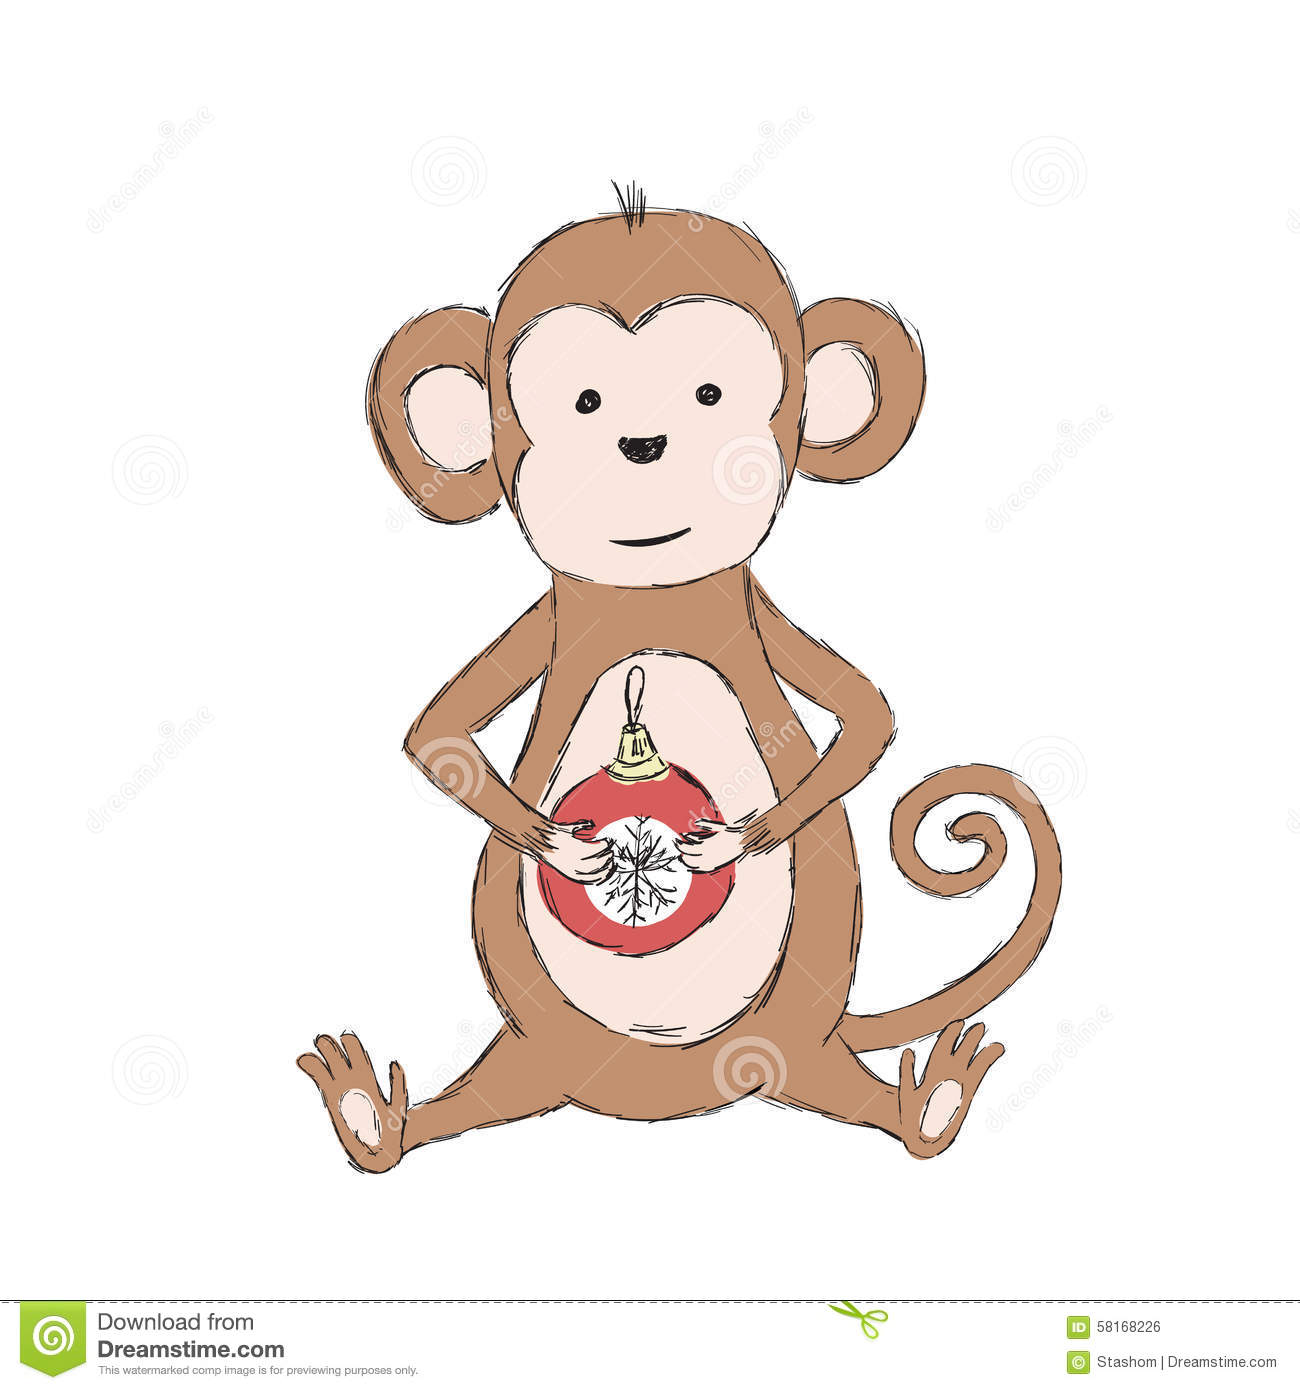 2016 Chinese Lunar New Year Monkey Holding Christmas Ball in Paws ...